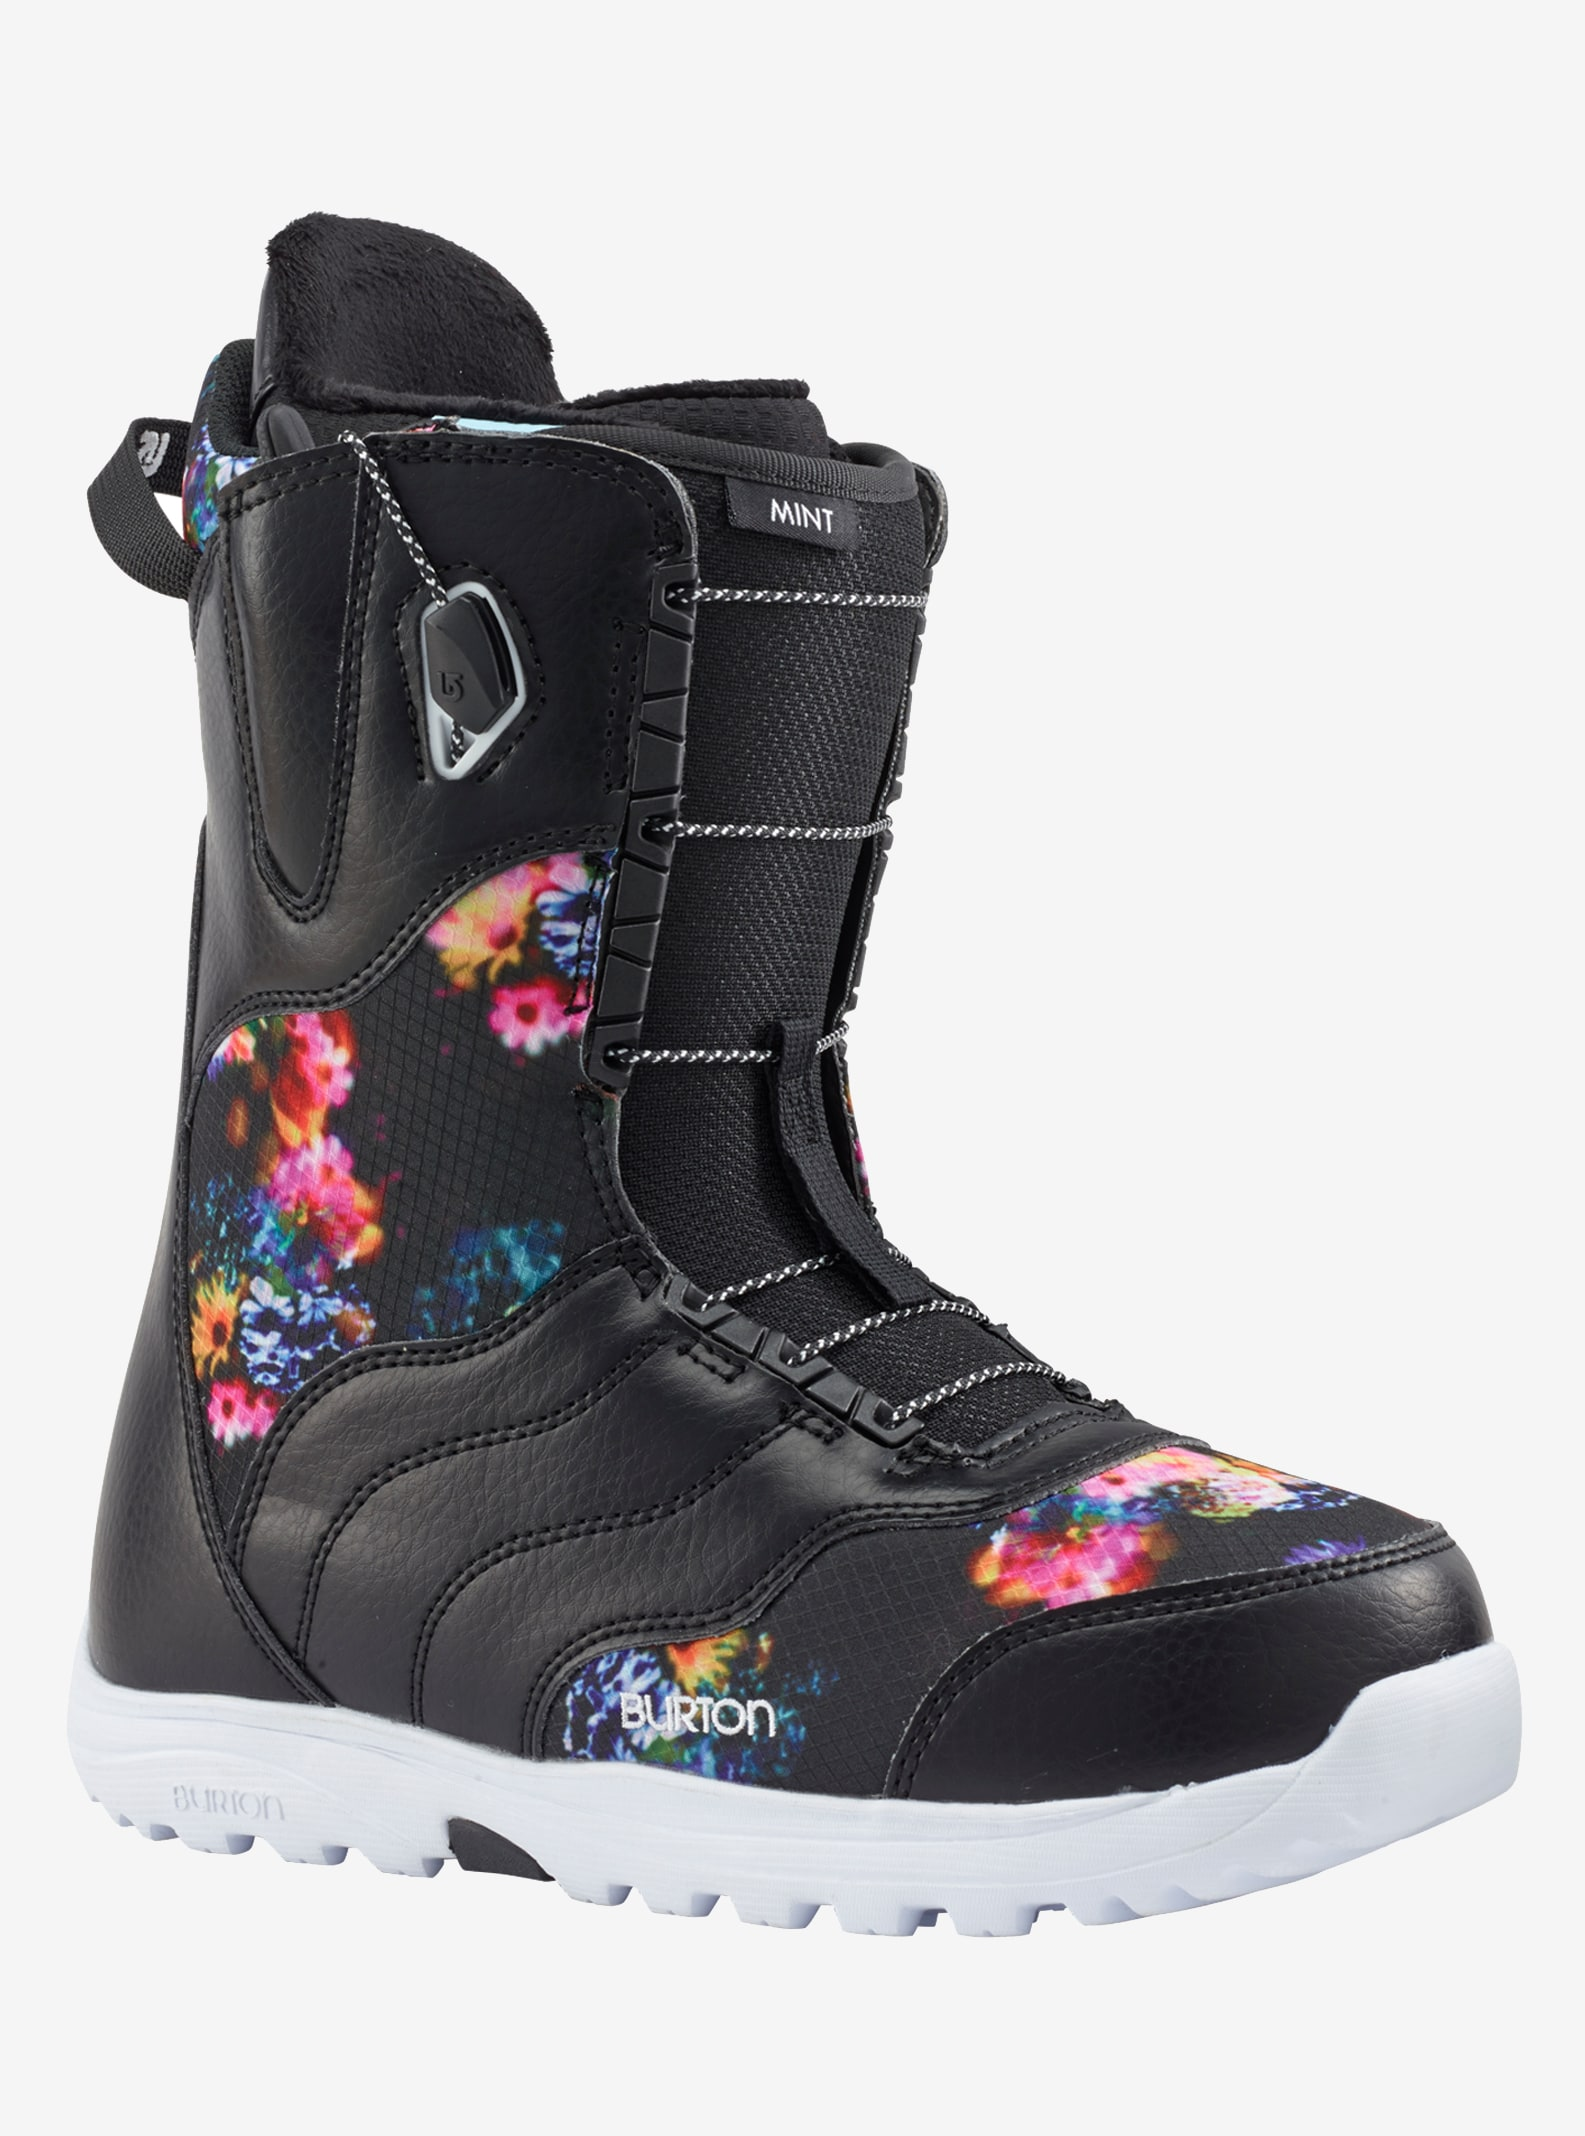 Women's Burton Mint Snowboard Boot shown in Black / Multi